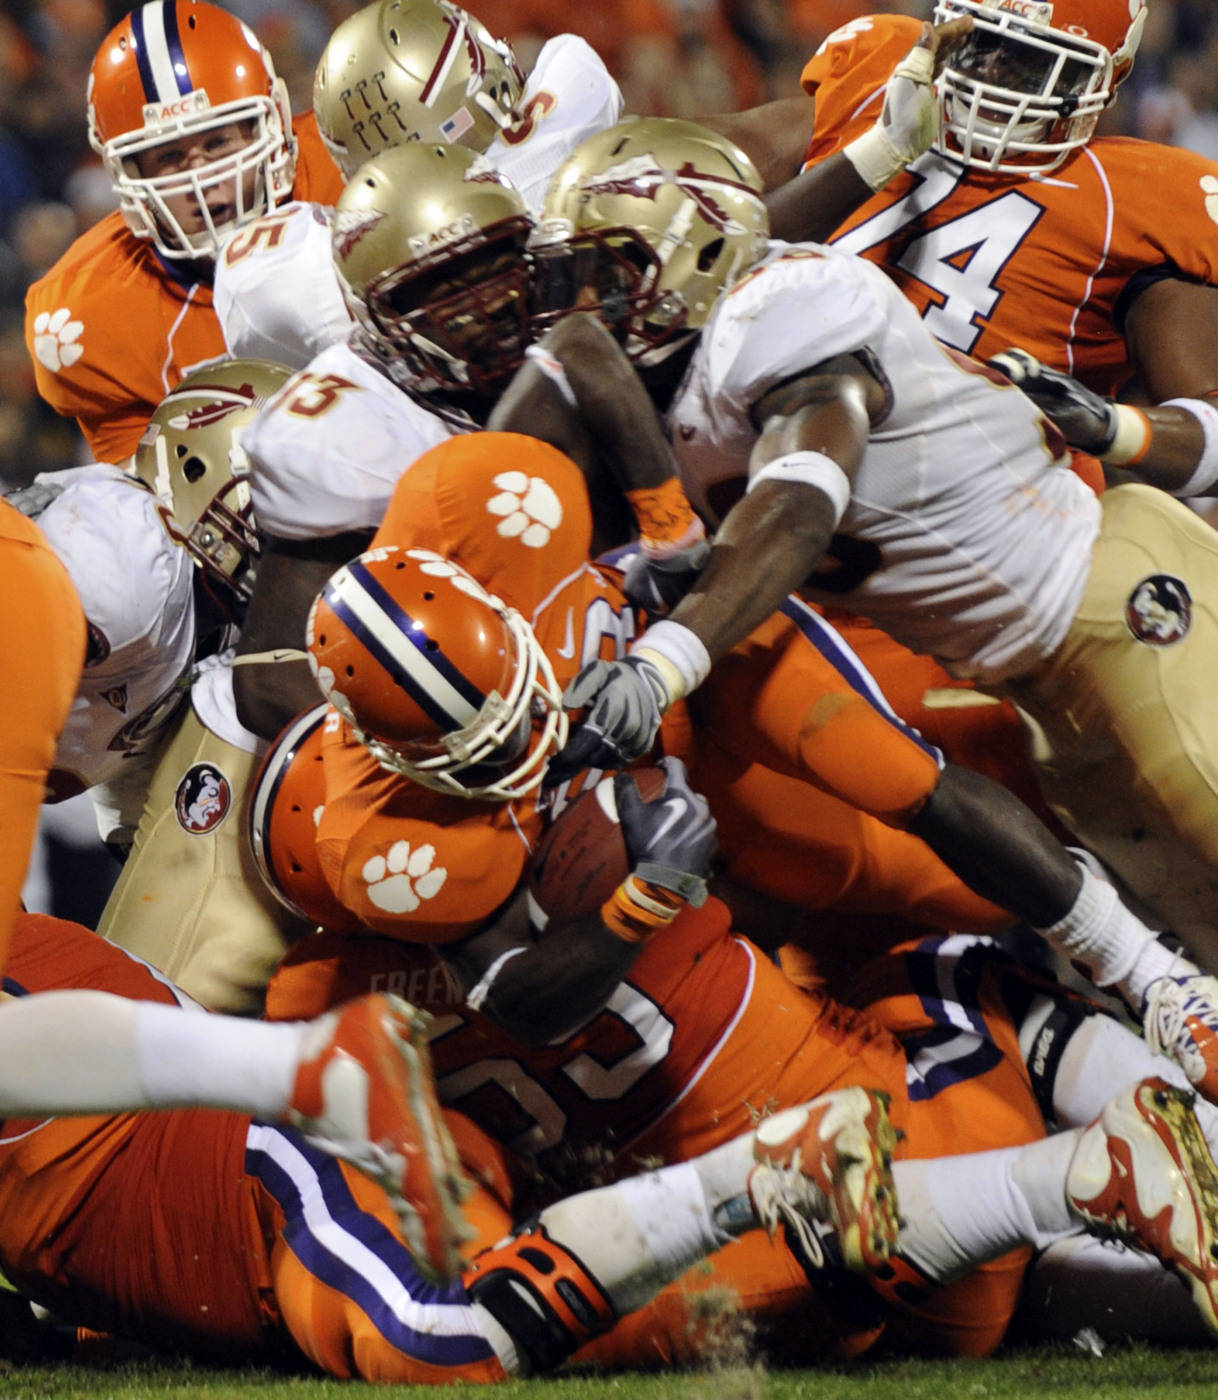 Clemson's C.J. Spiller (28) runs in for a two-point conversion against Florida State during the first half. (AP Photo/Richard Shiro)